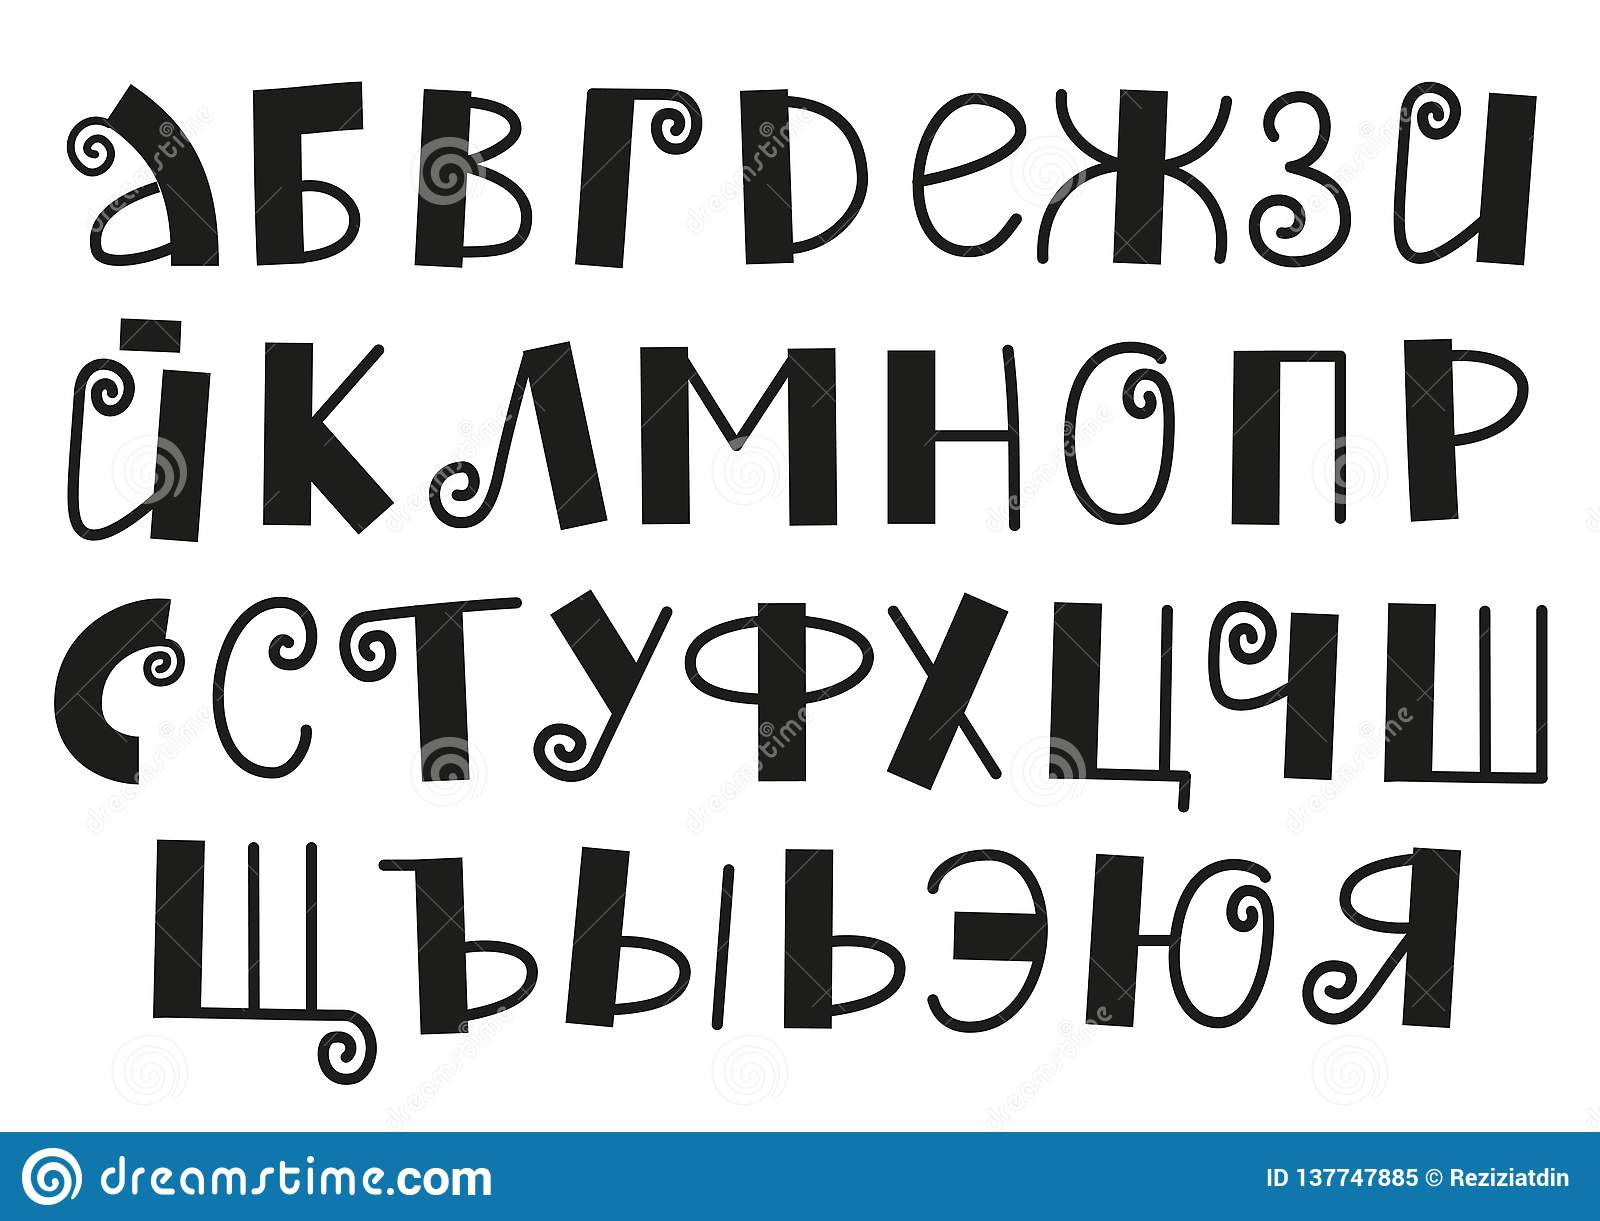 Decorative Cyrillic Alphabet With Swirls In Black Isolated